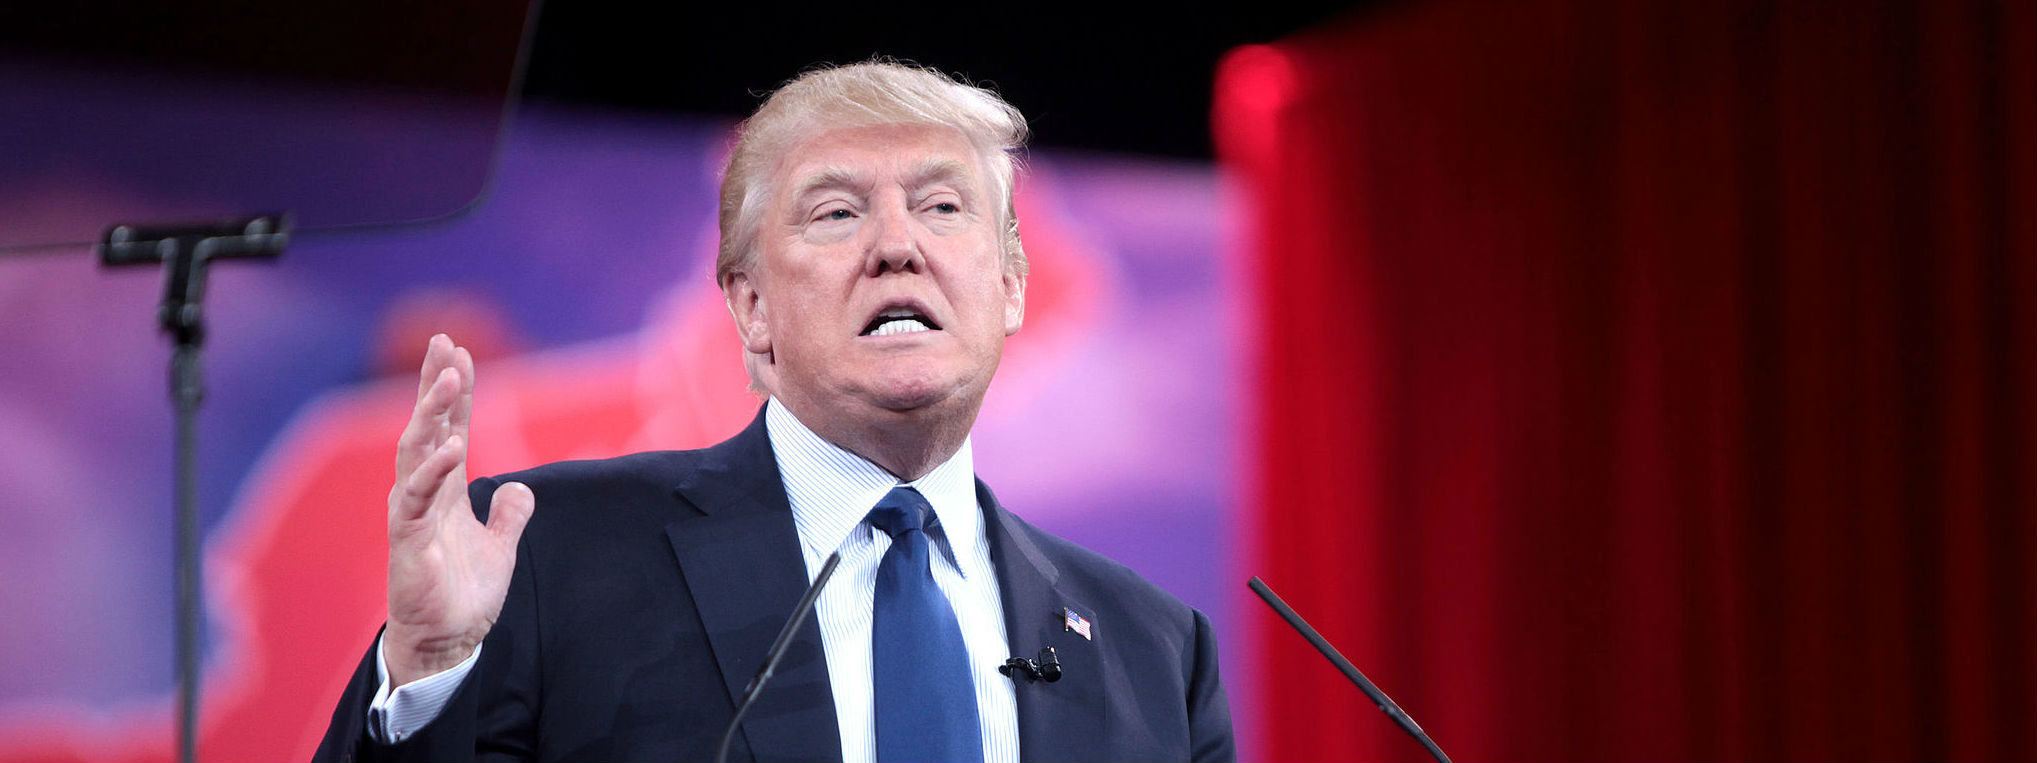 Without an Instant Runoff, Trump Favored to Win GOP Nomination